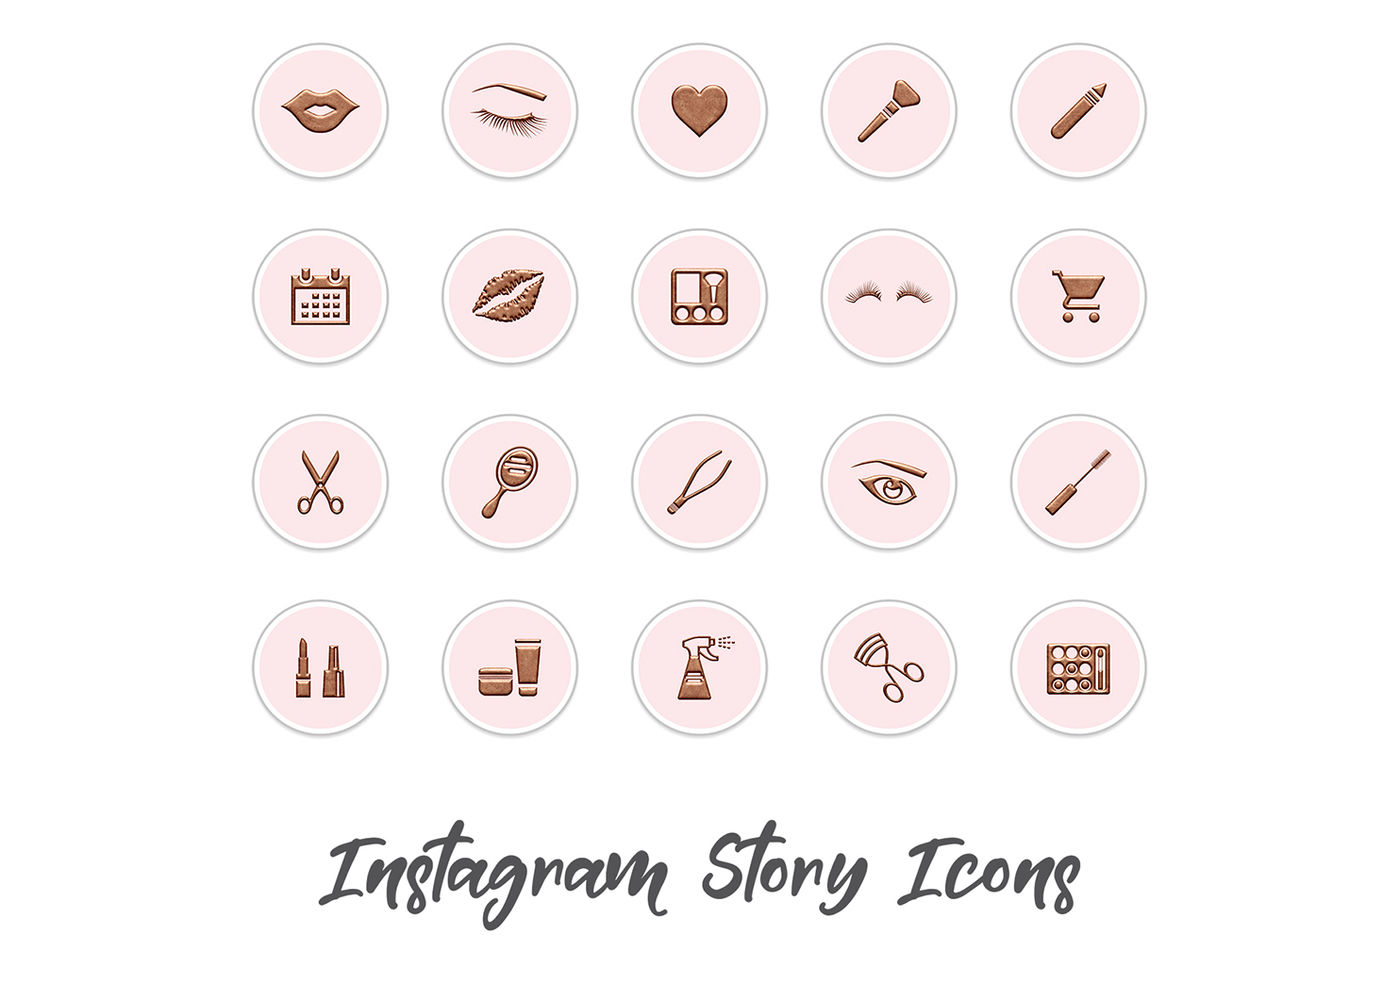 Beauty Instagram Story Icons By North Sea Studio Thehungryjpeg Com